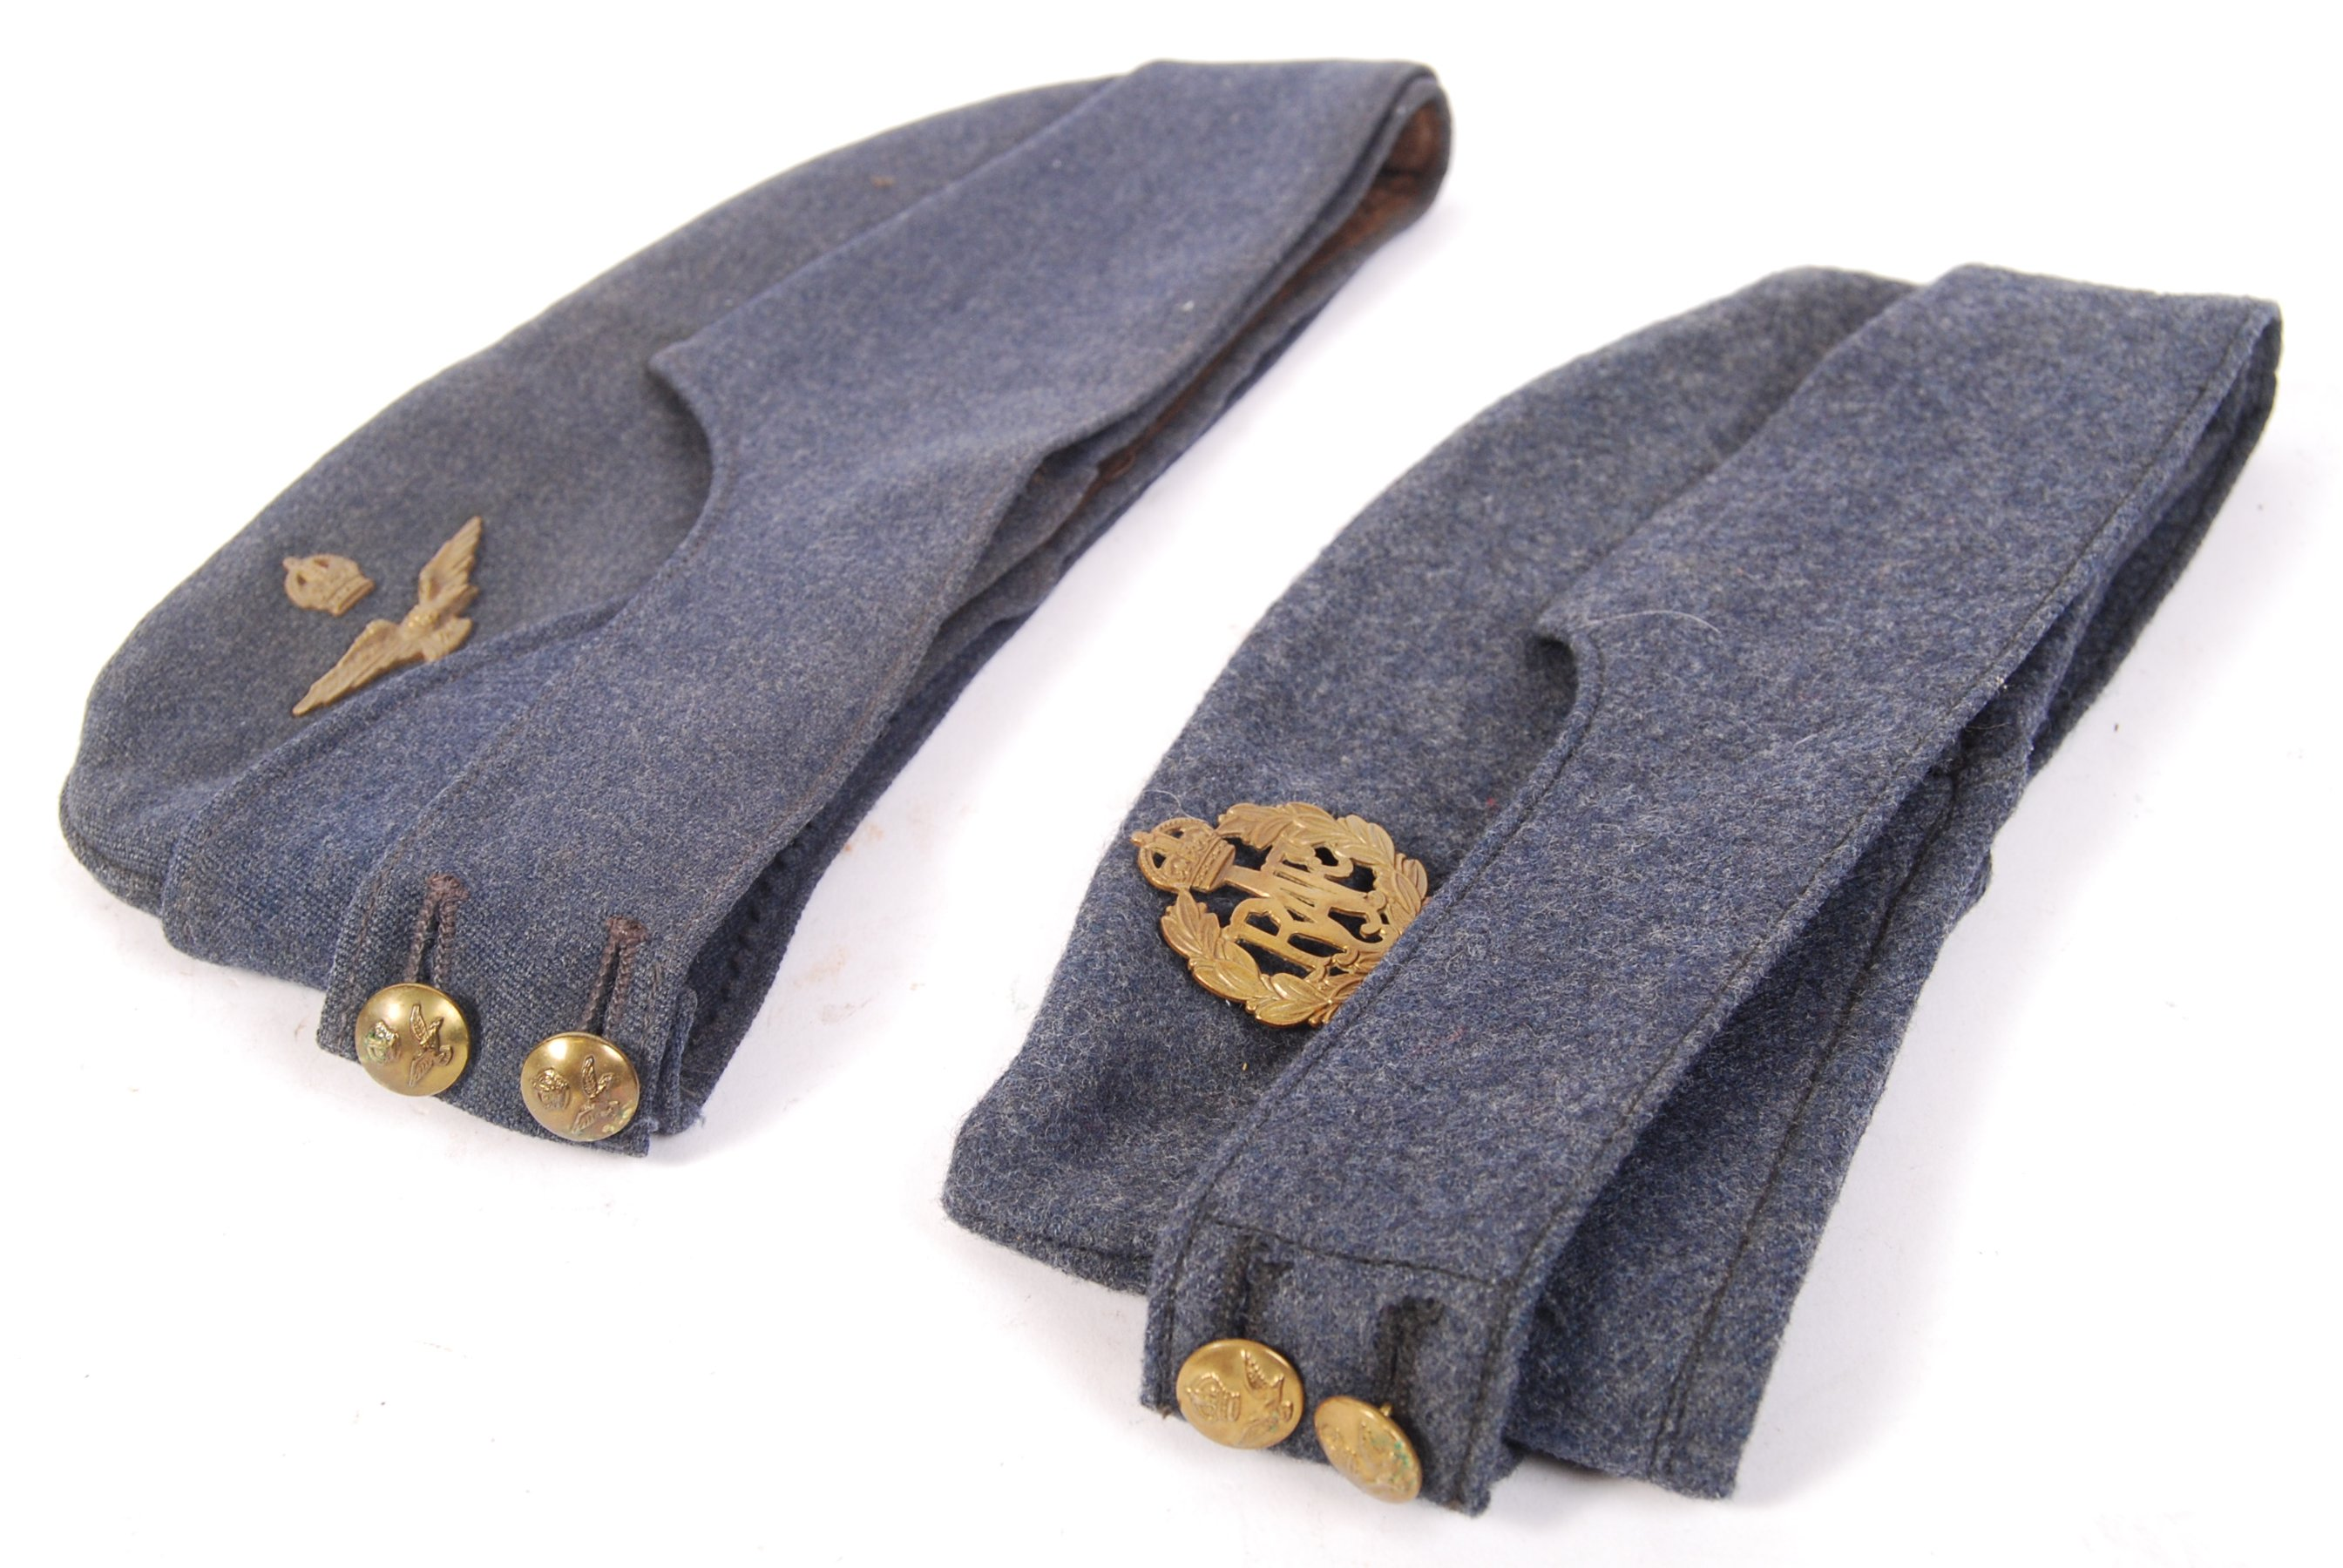 WWII SECOND WORLD WAR RAF UNIFORM FORAGE CAPS - Image 2 of 3